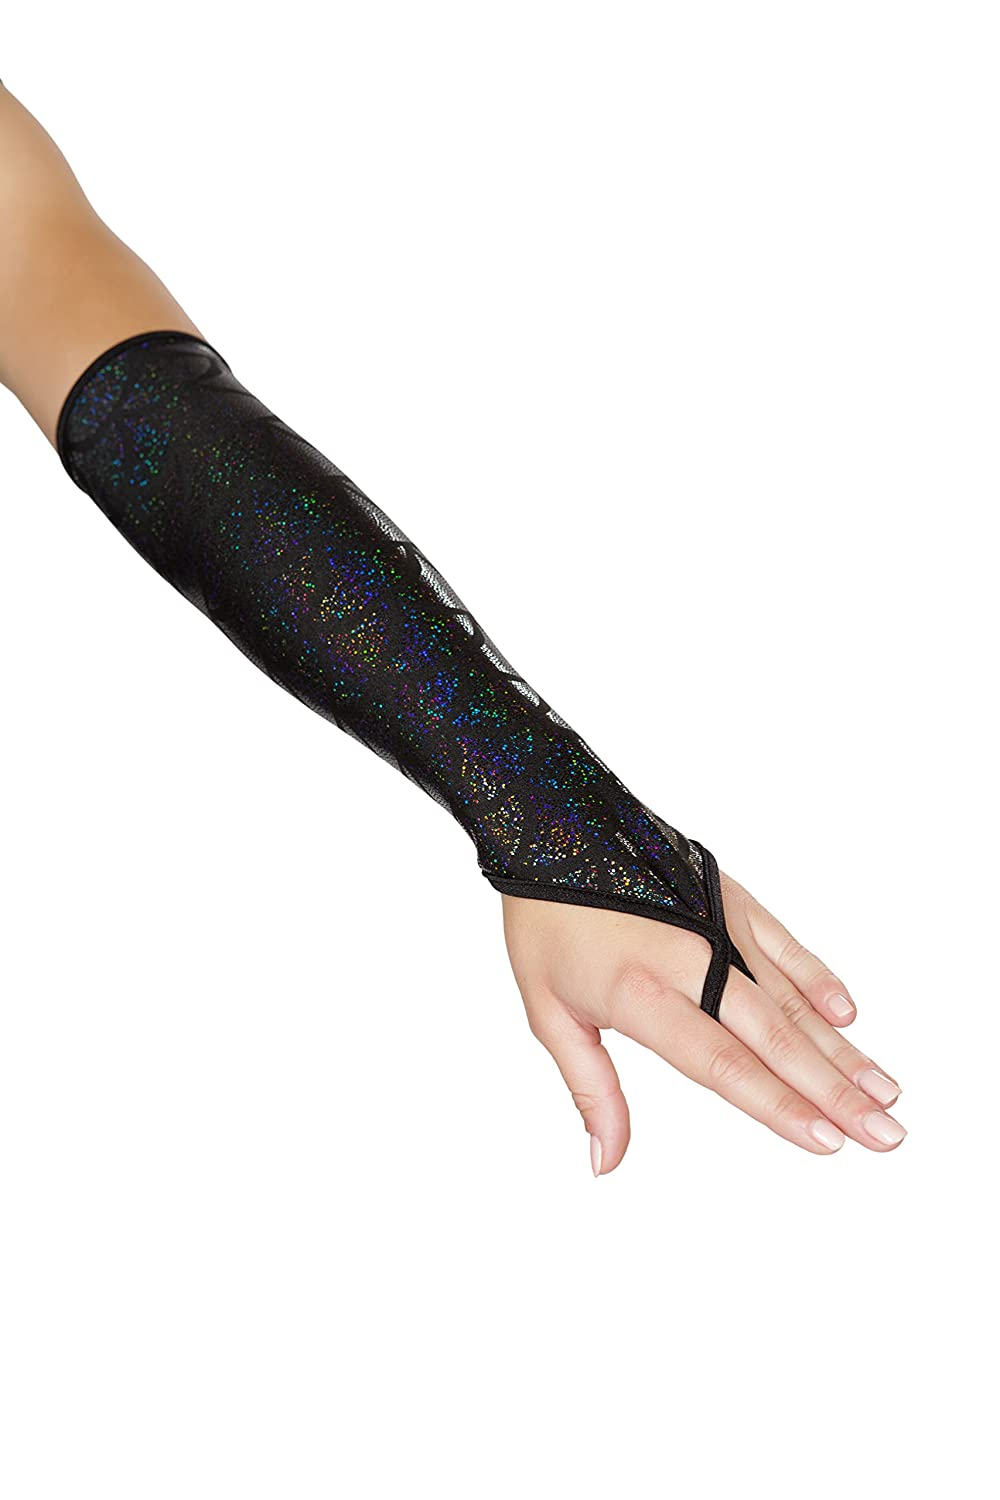 Iridescent Black Mermaid Fingerless Elbow Length Gloves - DeluxeAdultCostumes.com